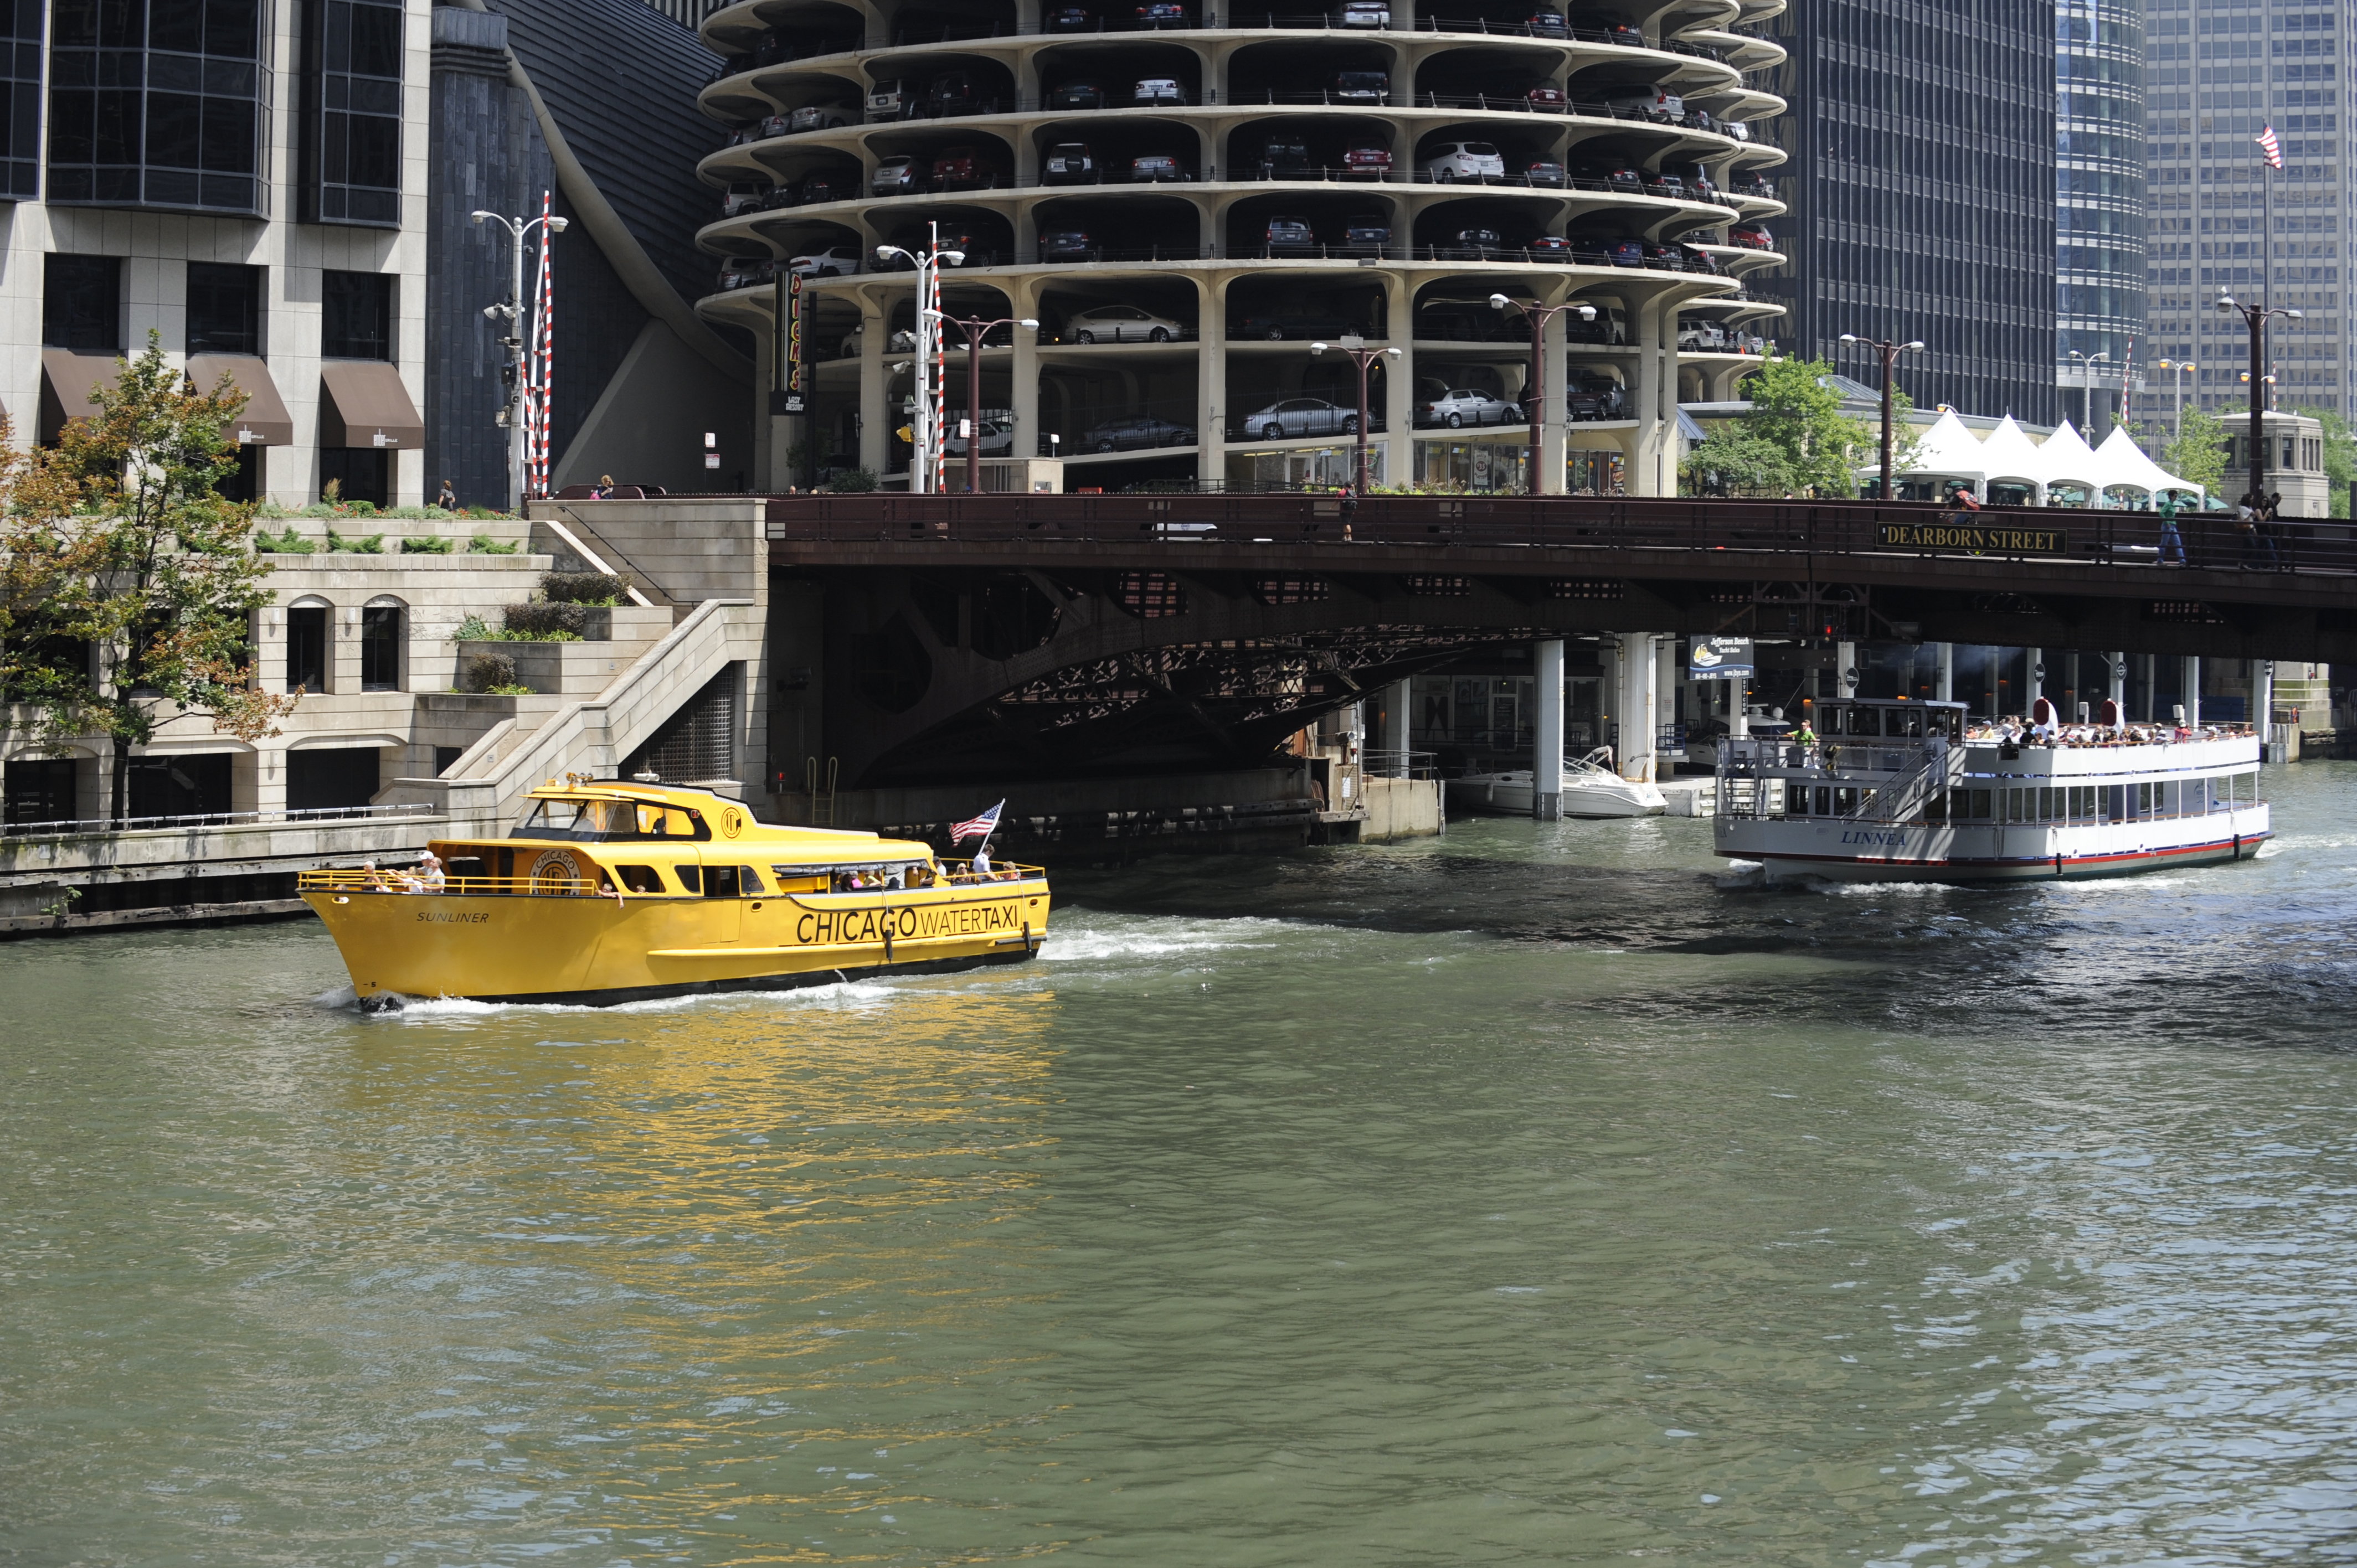 A water taxi is seen on the Chicago River near Clark and LaSalle Streets on Friday, July 29, 2011.